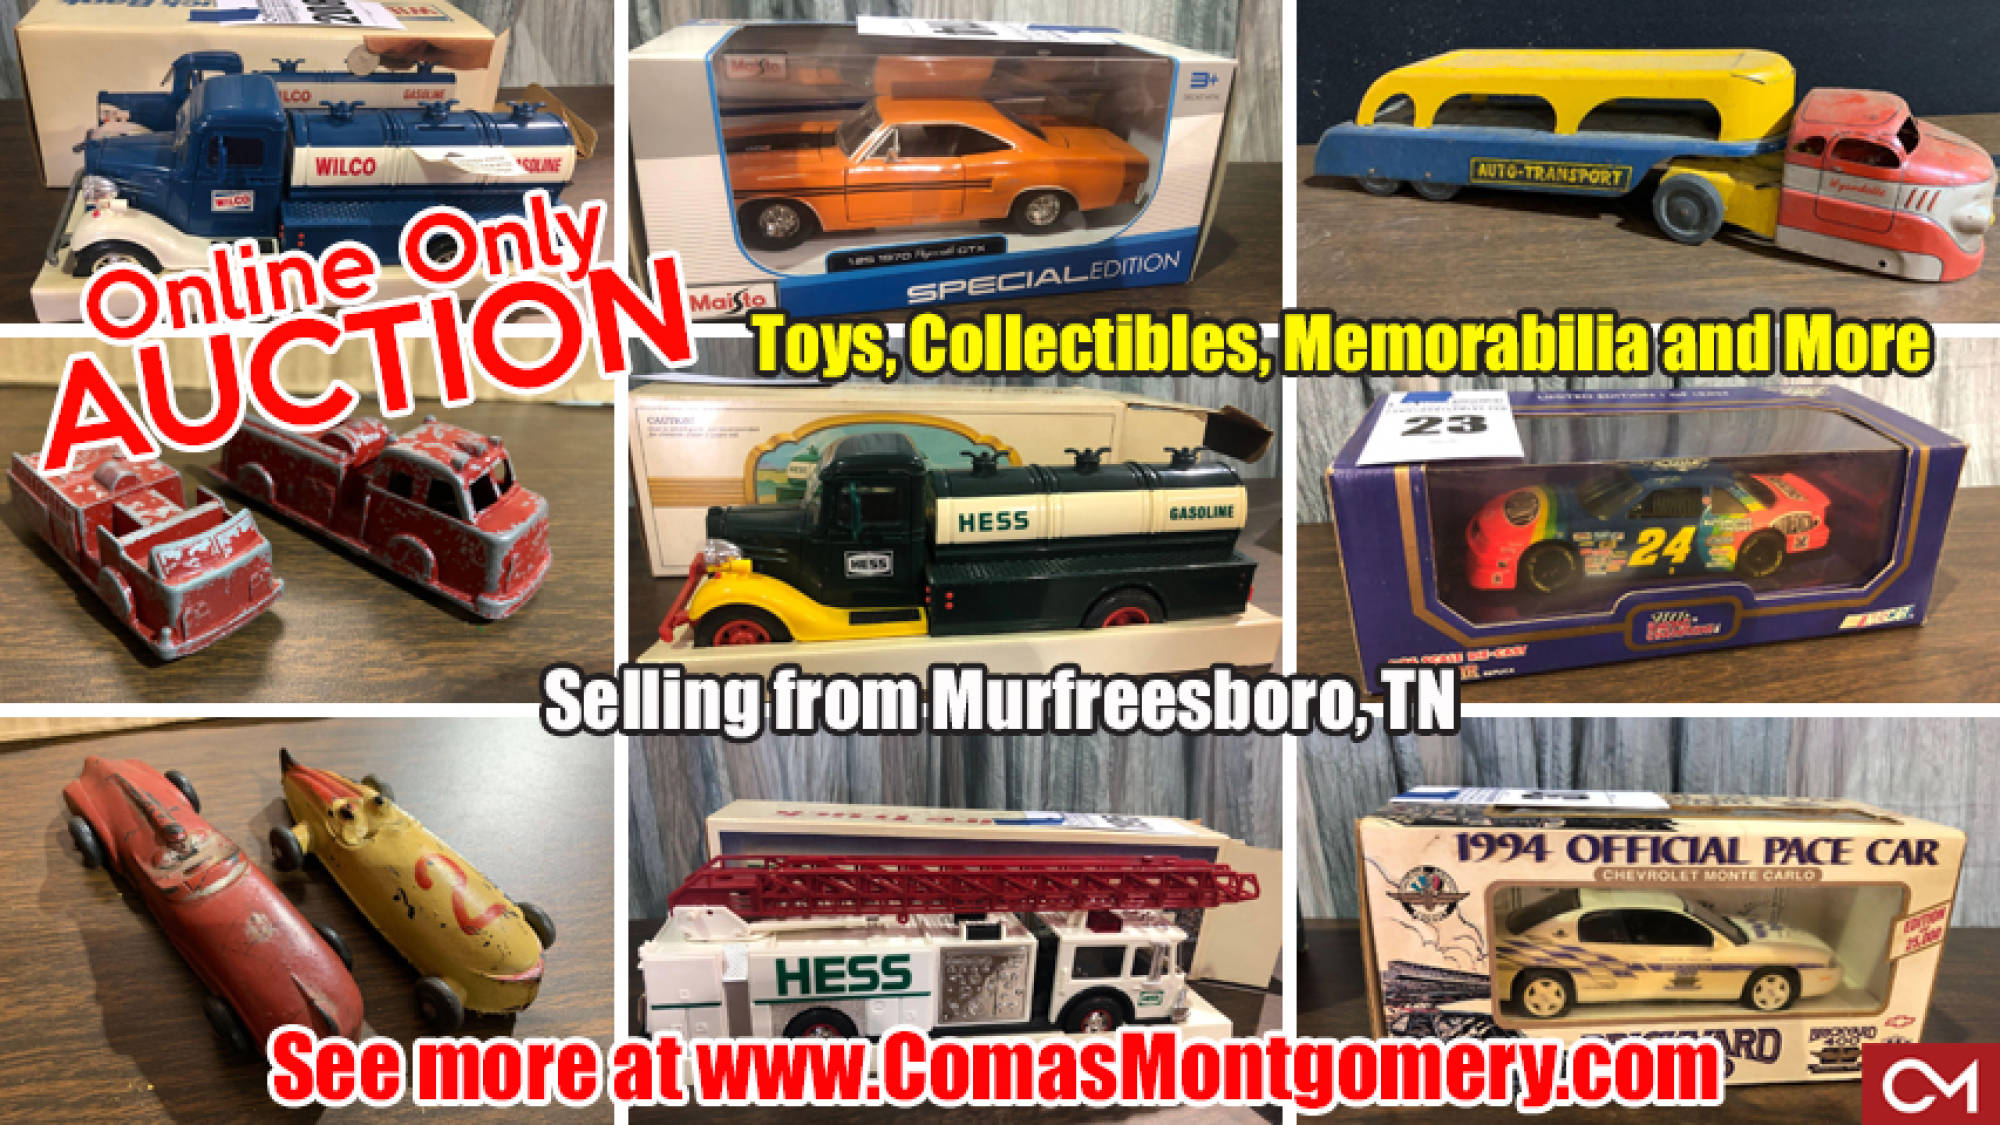 Auction, Antique, Metal, Cars, Trucks, Models, Toys, Collectibles, Memorabilia, Online, Bidding, Murfreesboro, Comas, Montgomery